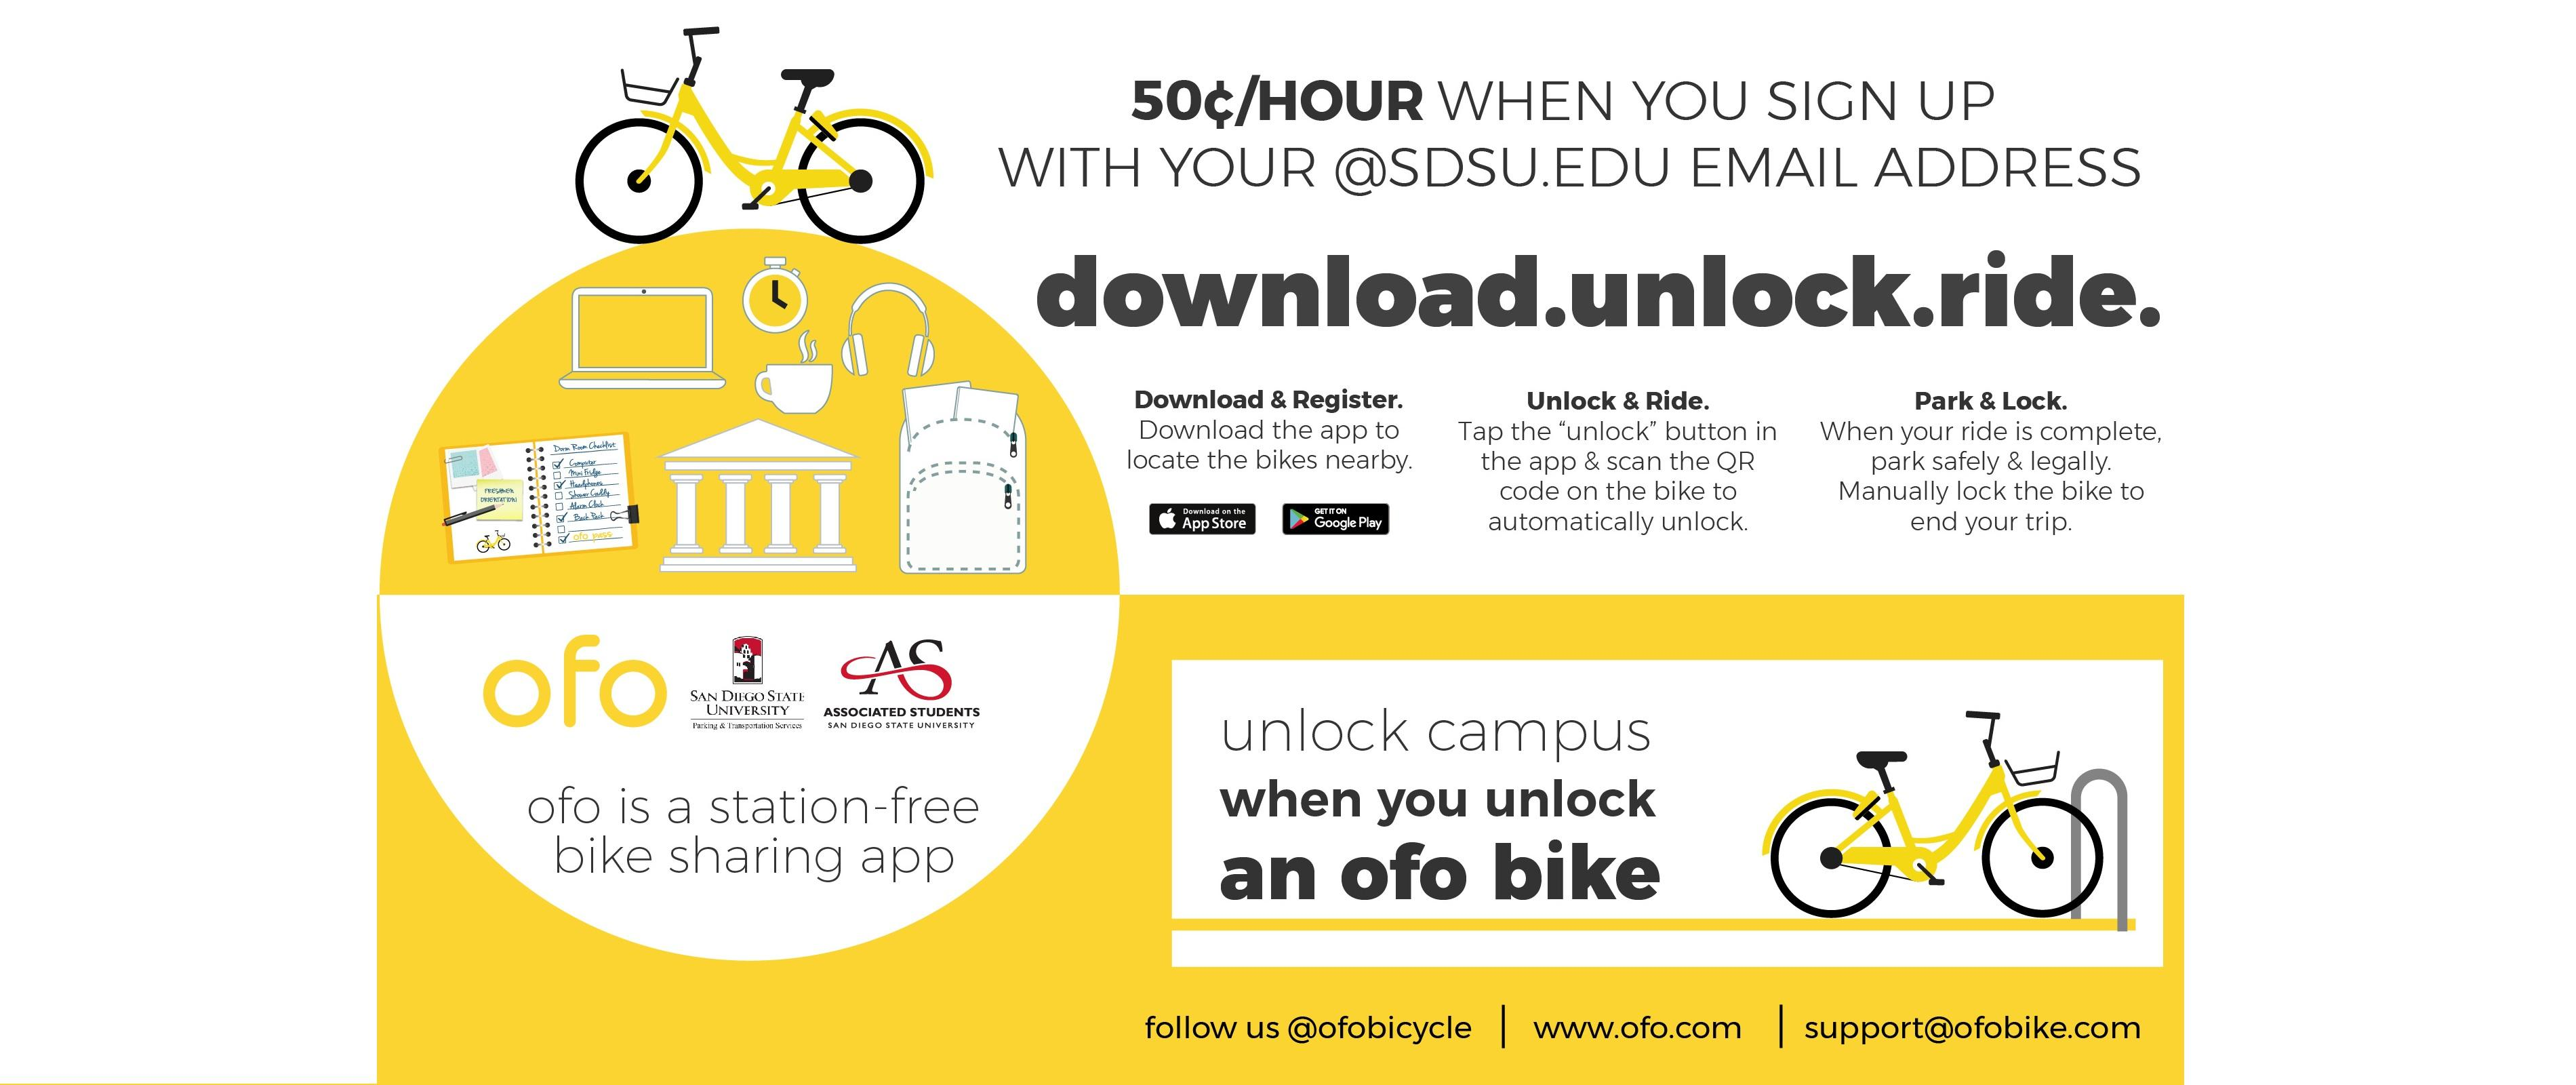 ofo Bike Share